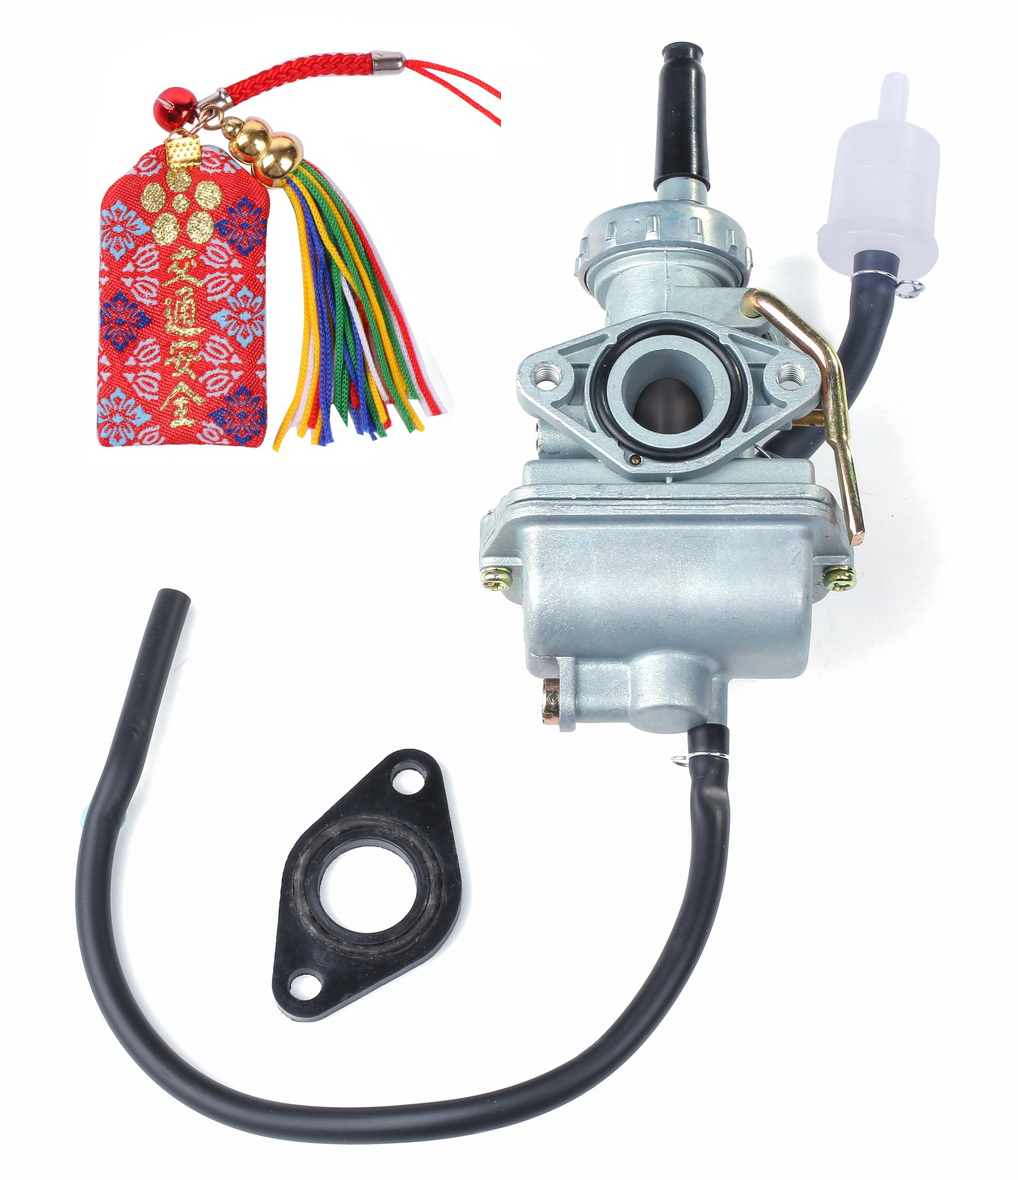 Carburetor monkey ATV four buggy frequent use motorcycle diameter 20mm/20mm  exchange parts frequent use cab skr-a15